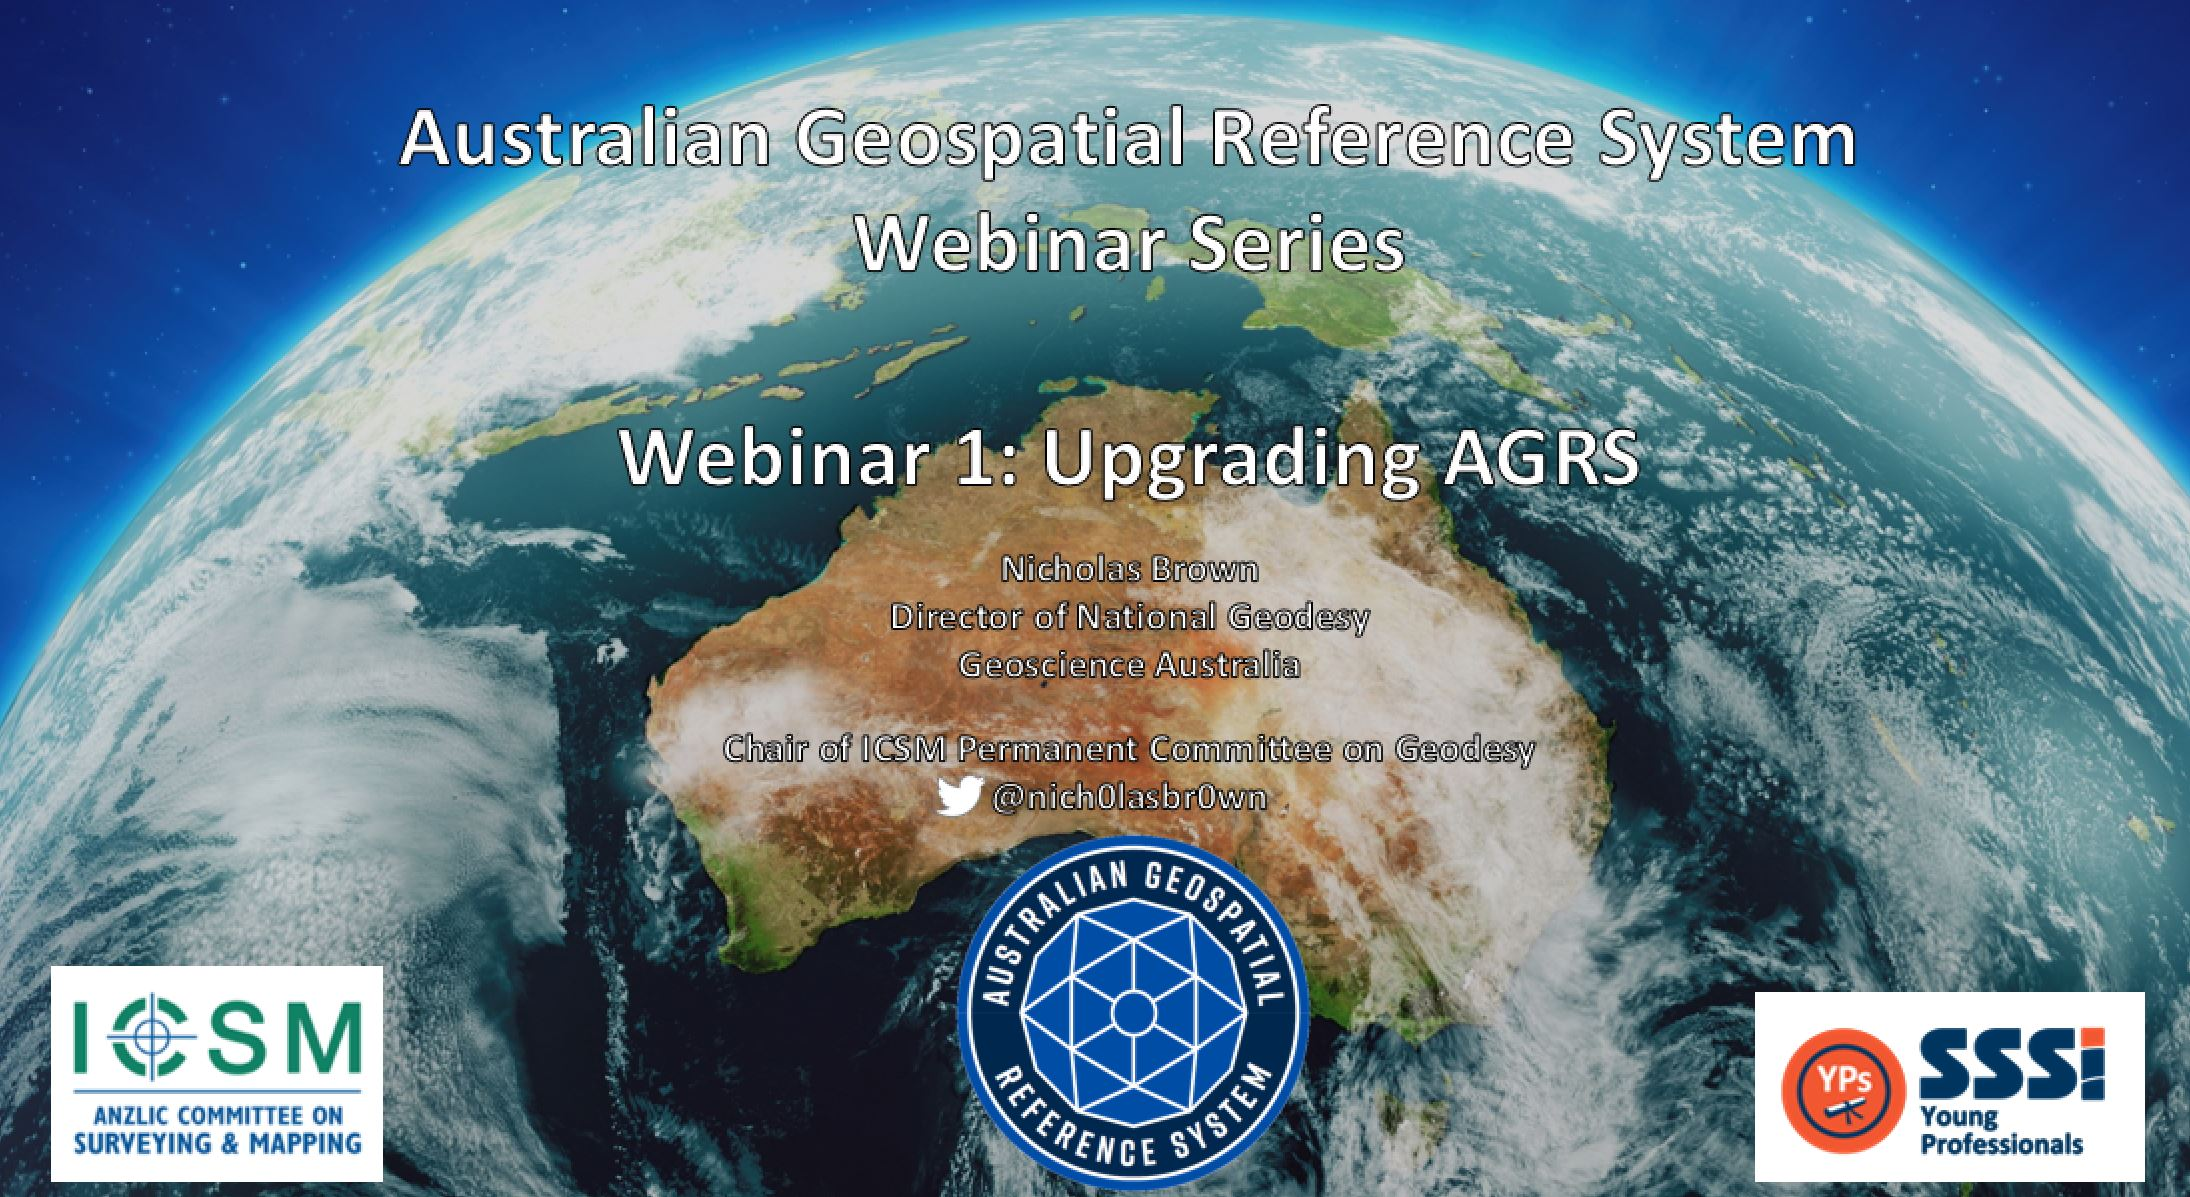 Image of Australia with title of webinar on it